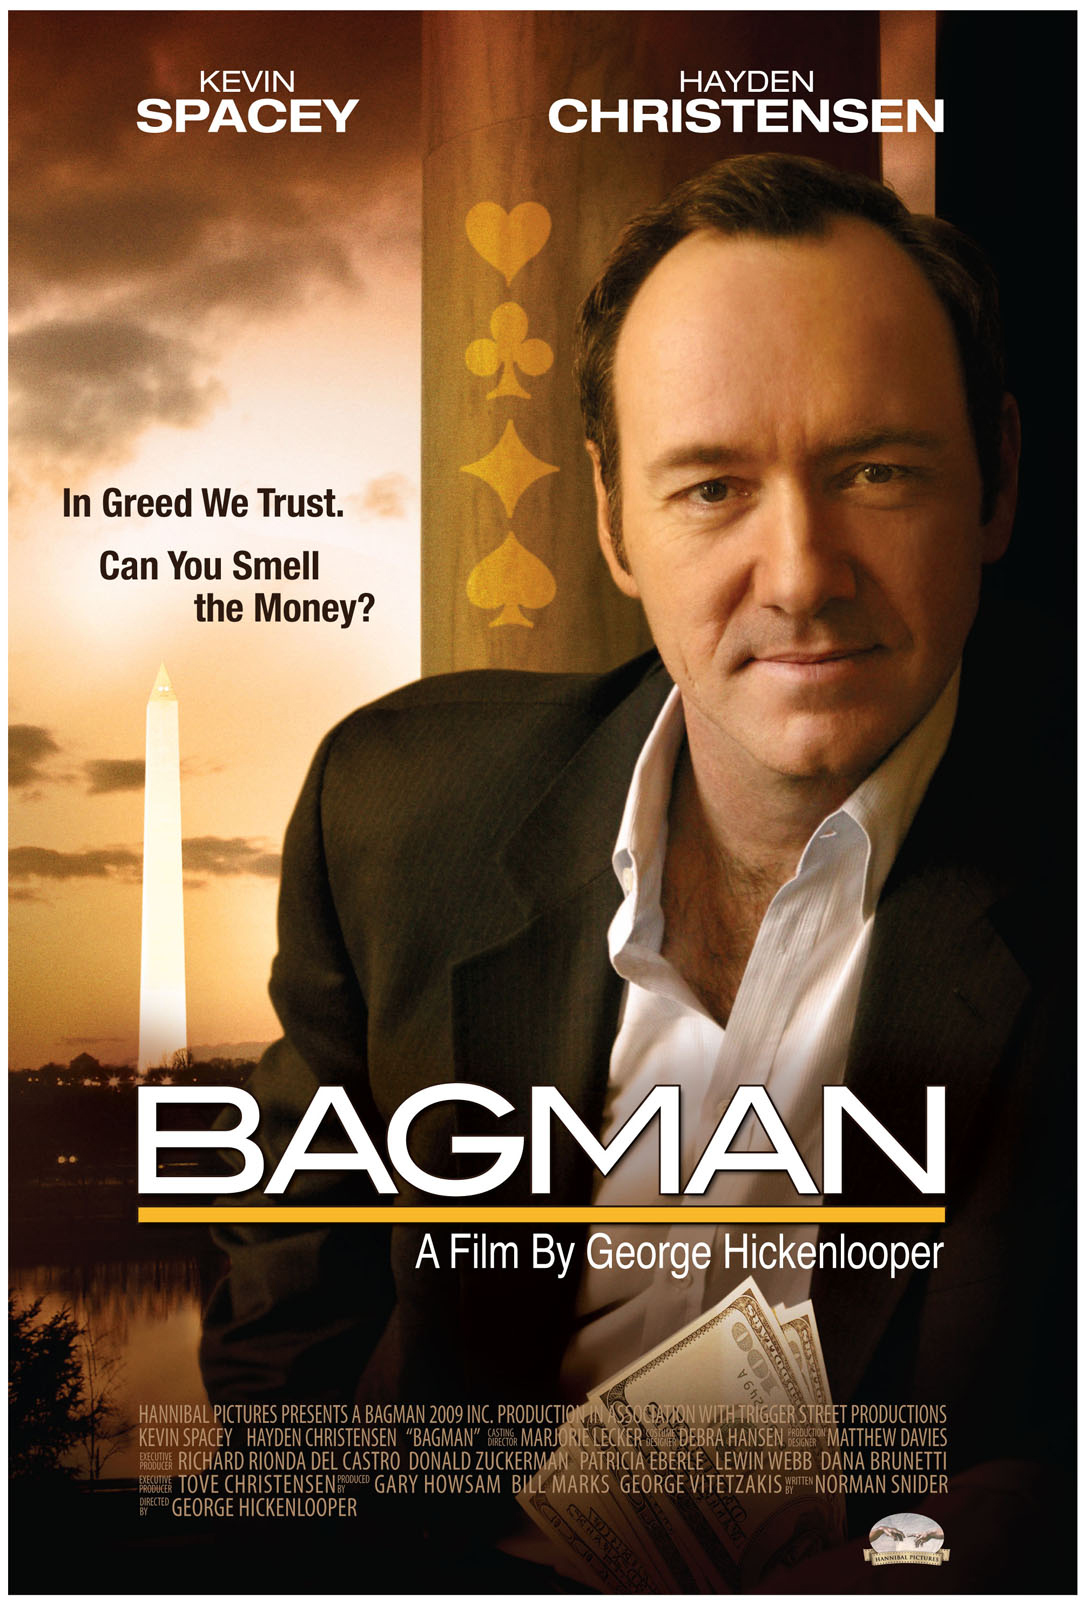 Movie Poster for Bagman